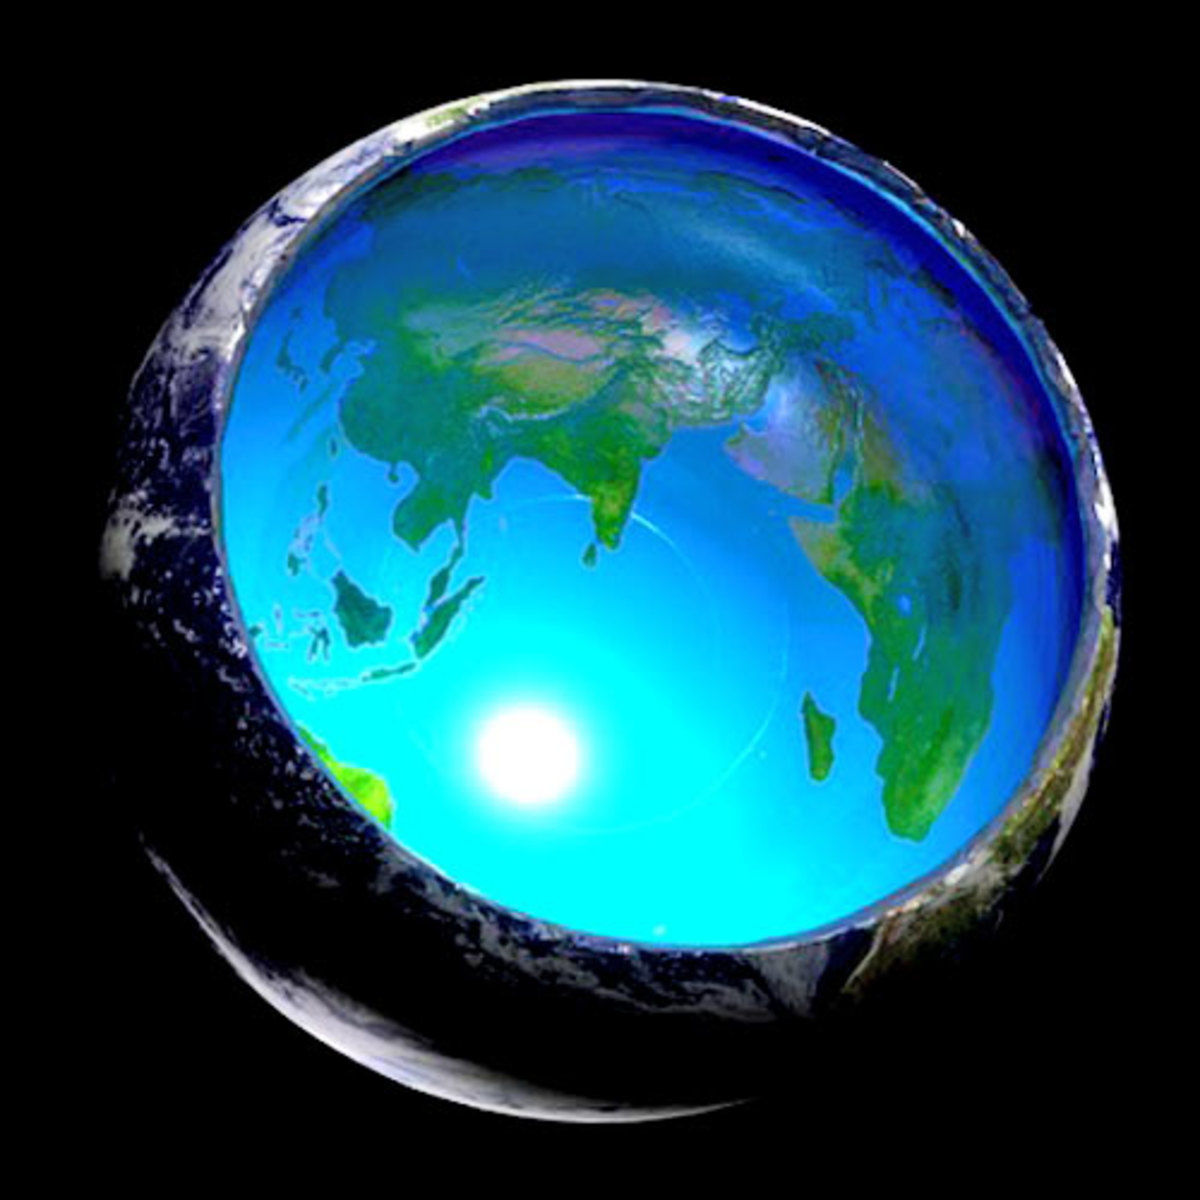 Hollow Earth, No Fly Zones, Polar Openings and 'Science'